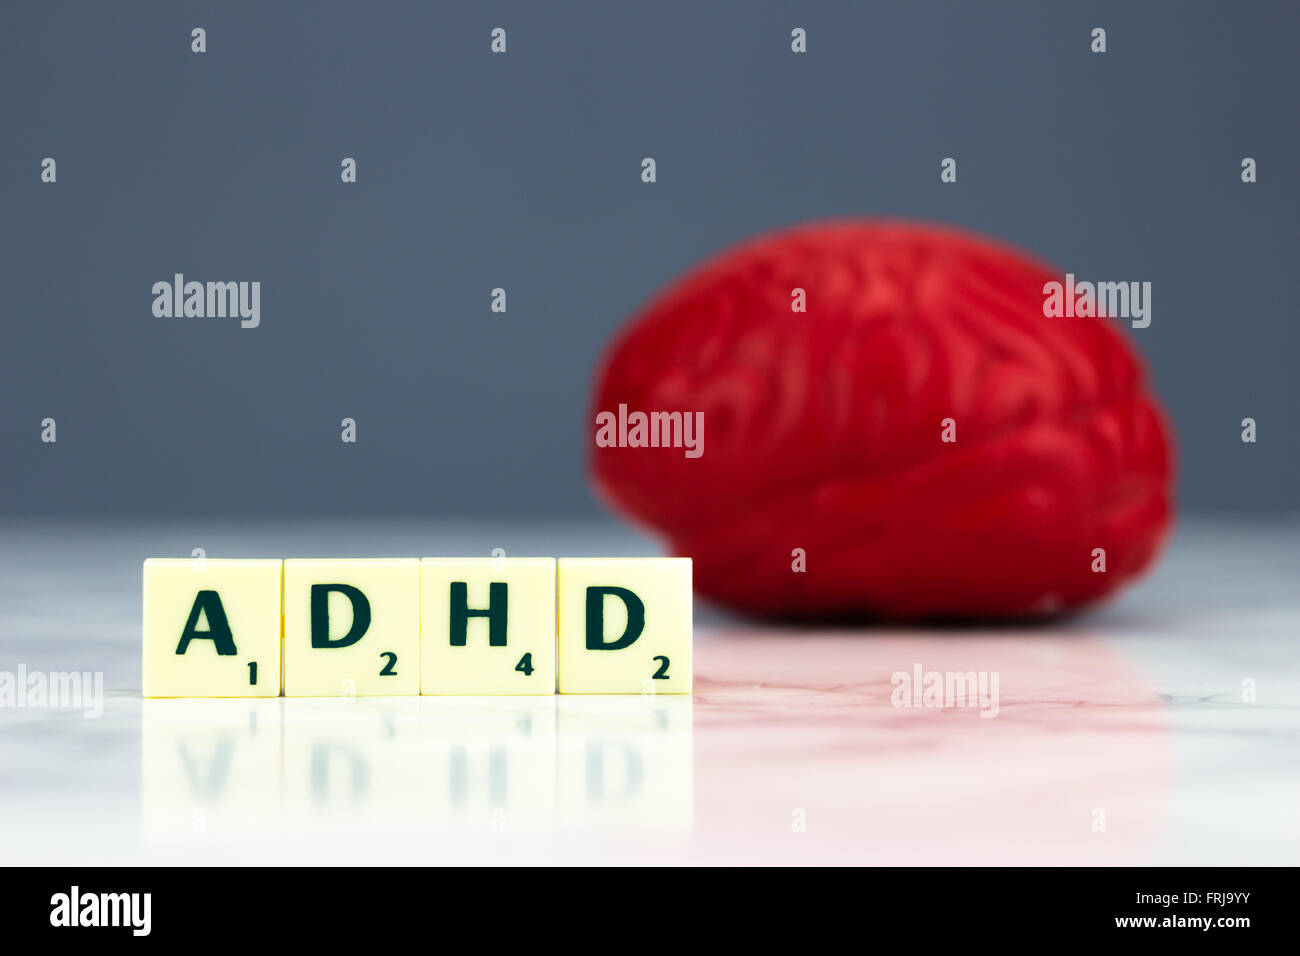 Red brain with ADHD sign on dark background - Stock Image